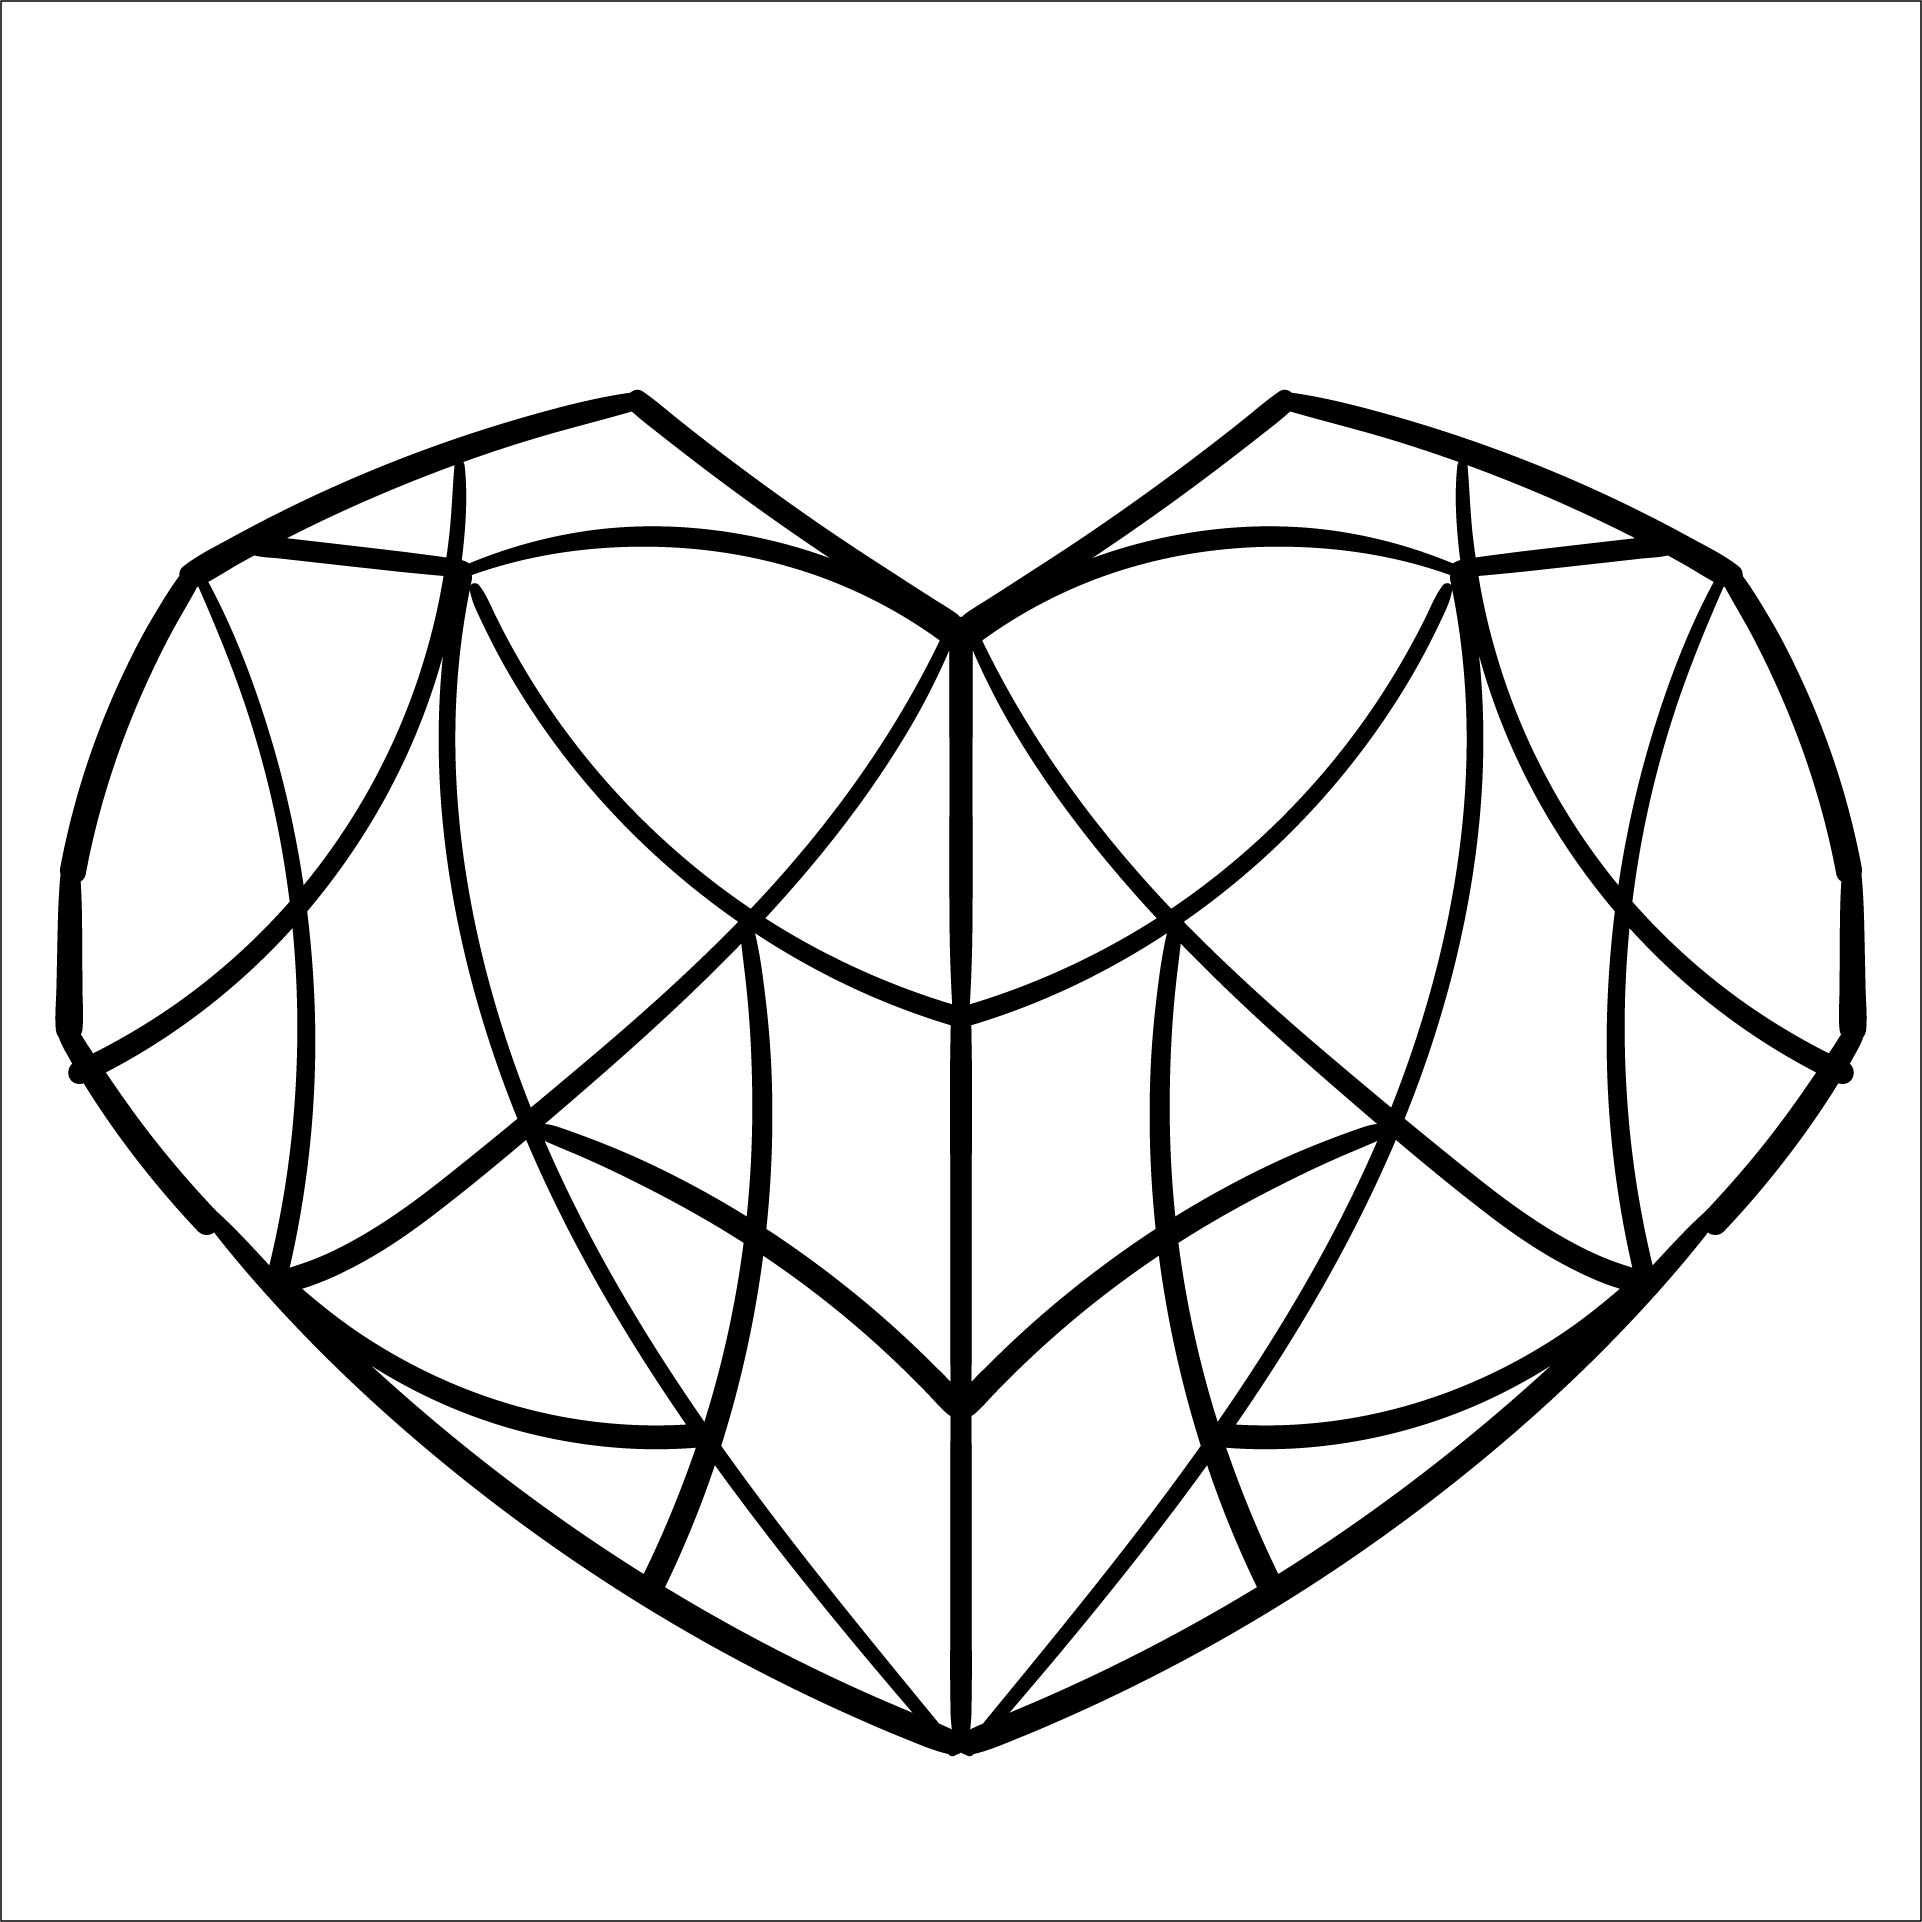 Printable Heart Stencil Templates